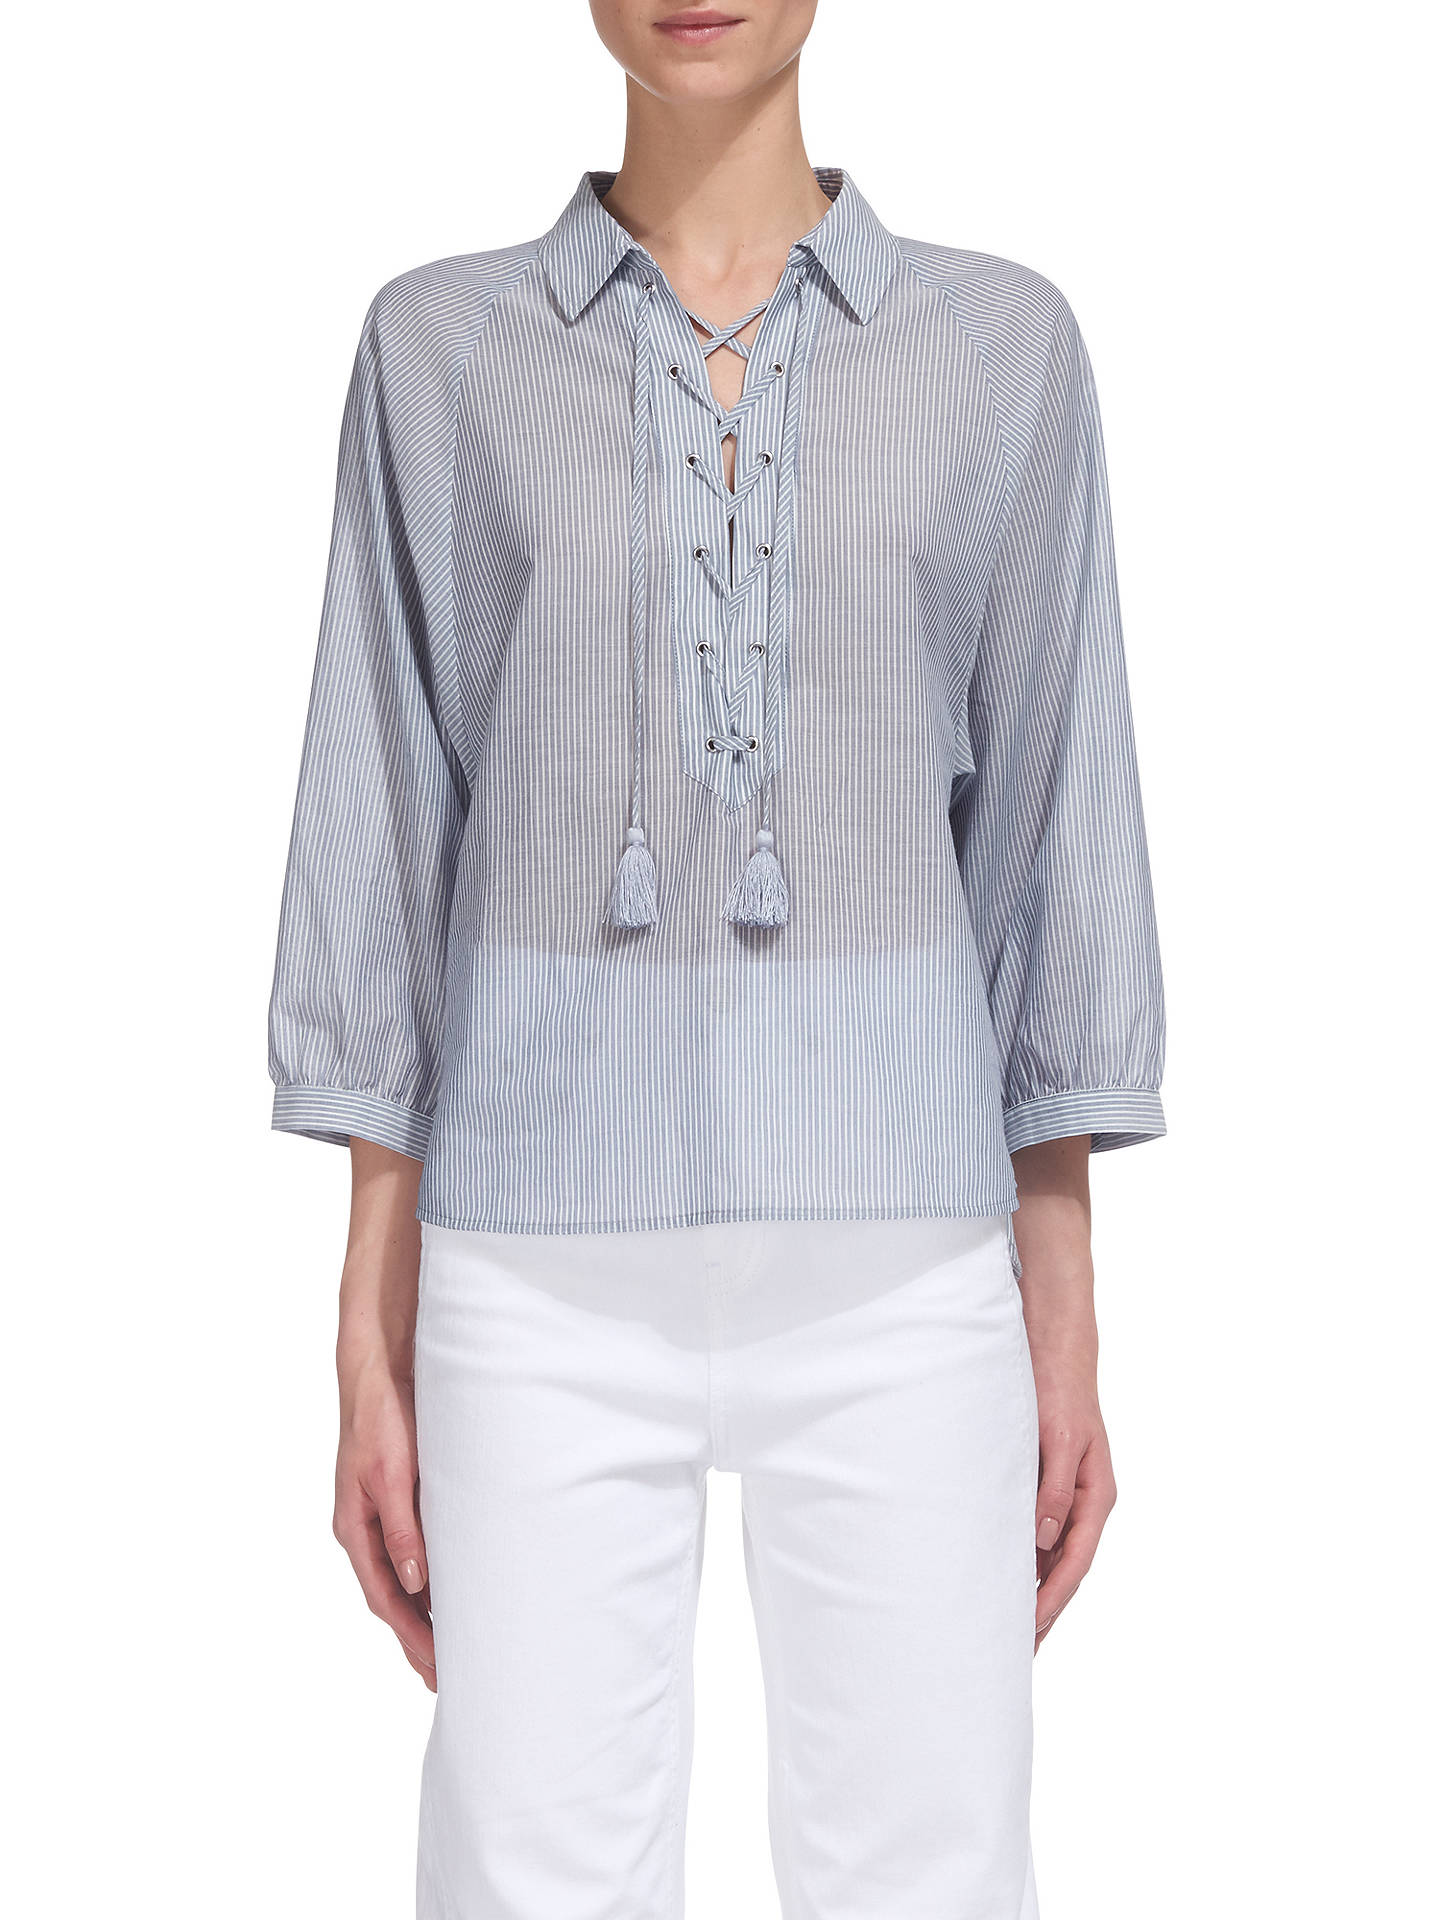 BuyWhistles Lace Up Front Stripe Shirt, Blue/White, XS Online at johnlewis.com